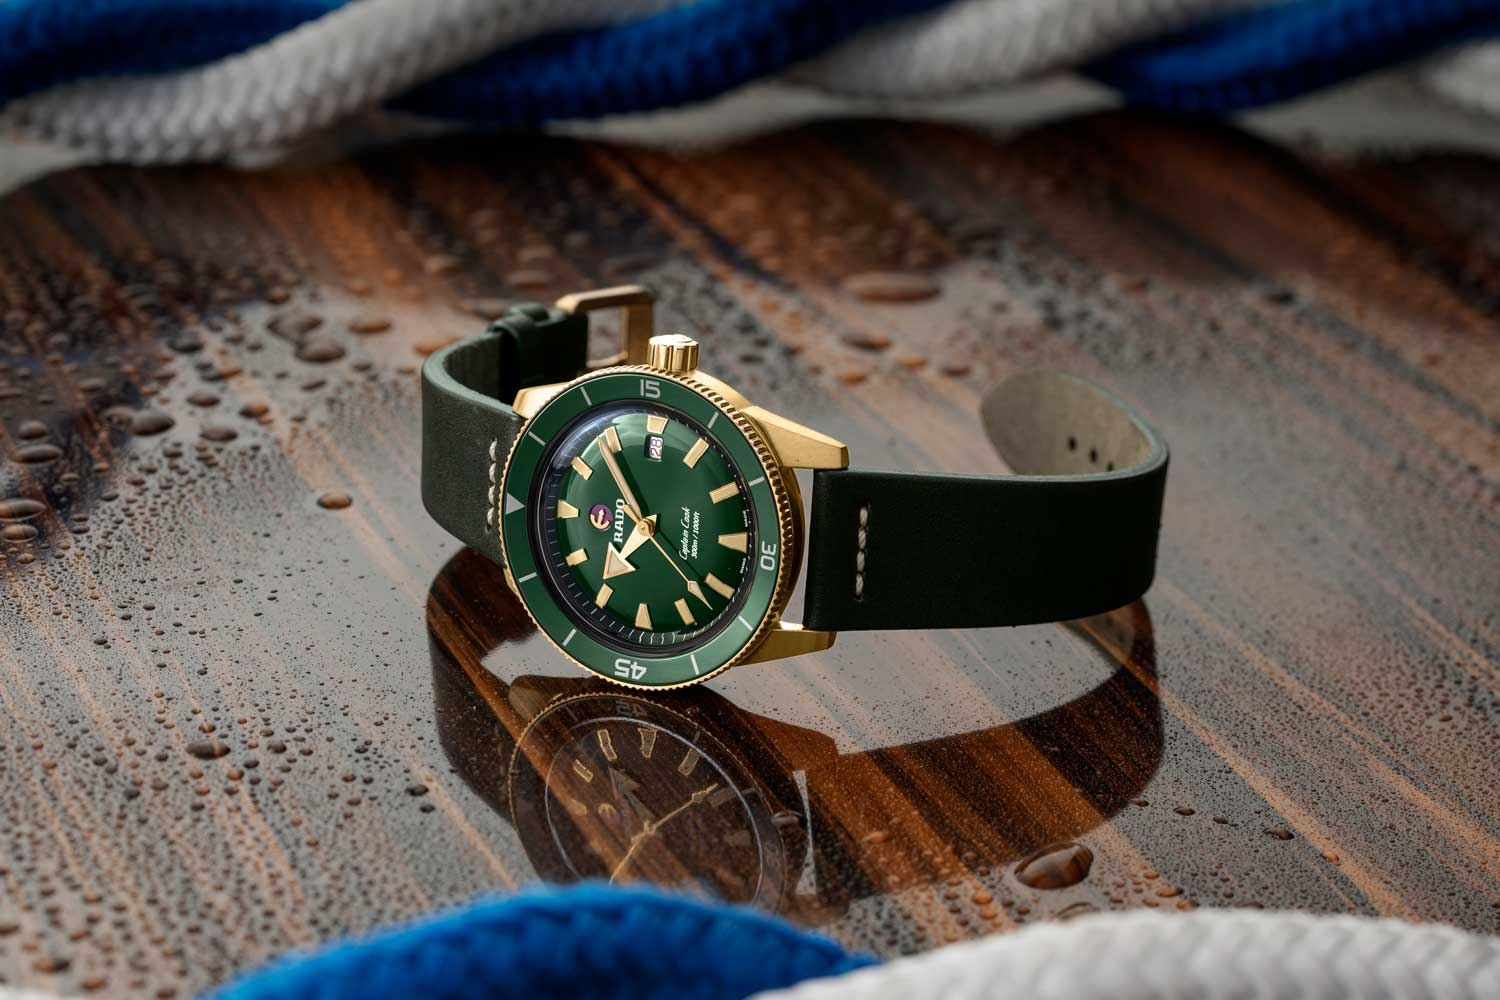 The Captain Cook Bronze in green with matching ceramic bezels and leather straps (©Revolution)